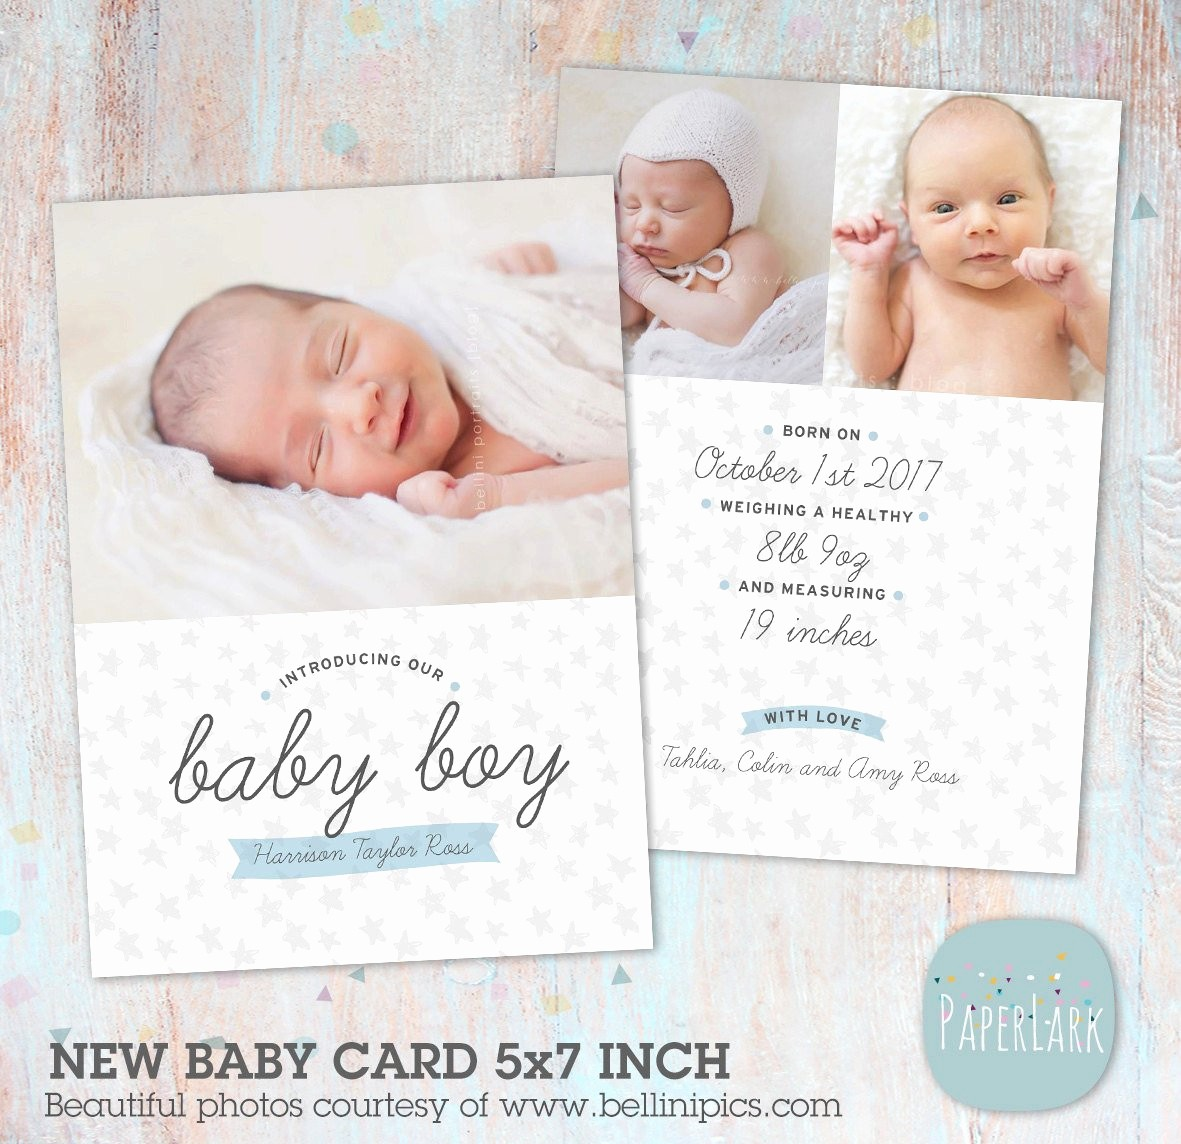 Baby Boy Birth Announcement Template Lovely Newborn Baby Boy Birth Announcement New Baby Shop